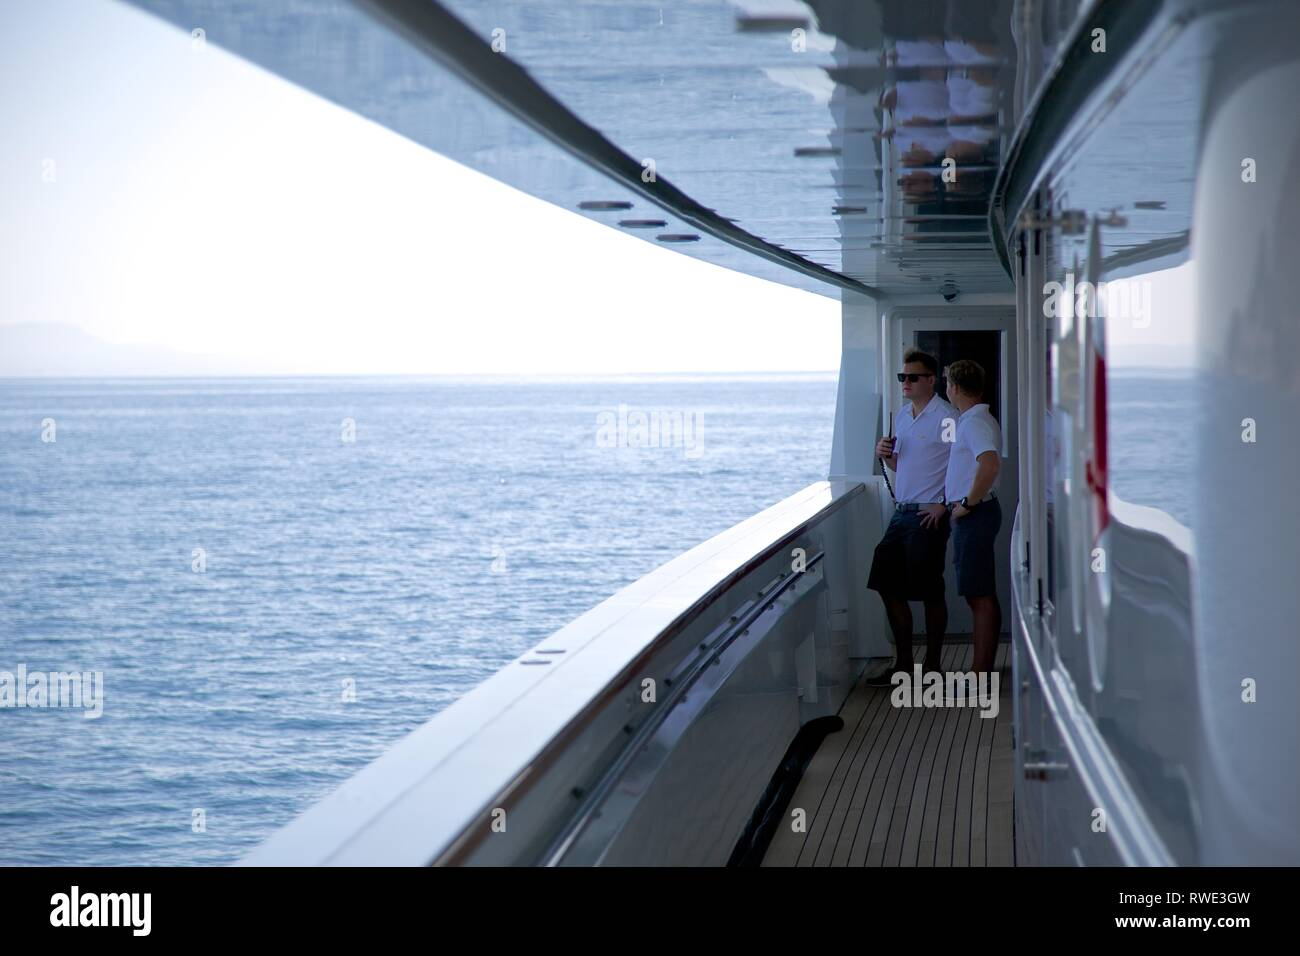 Wide view of 2 Superyacht crew in uniform on deck talking, sea background - Stock Image